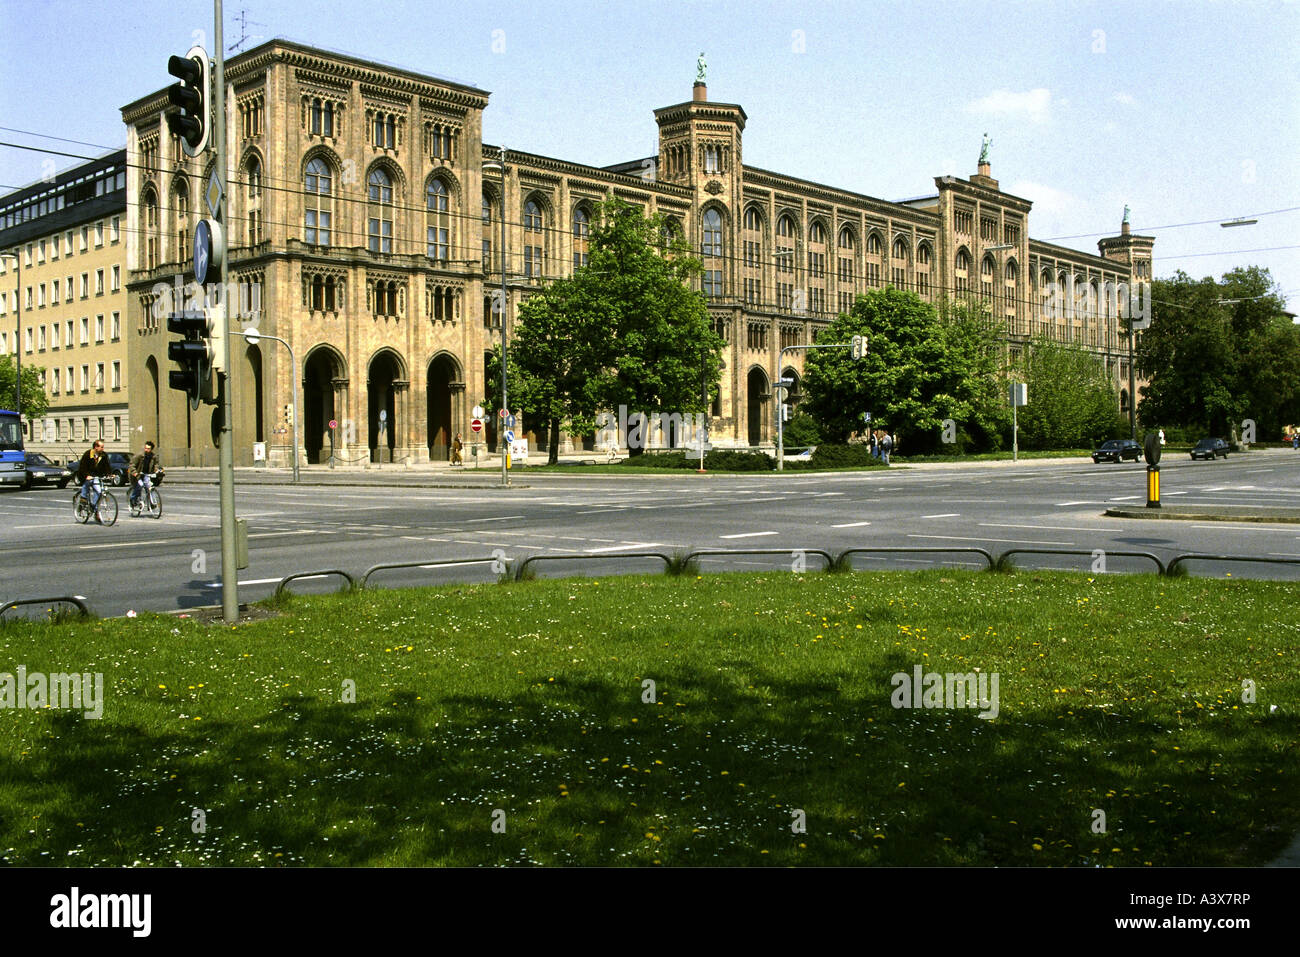 geography / travel, Germany, Bavaria, Munich, buildings, Regierung von Oberbayern, exterior view, architect: Friedrich - Stock Image